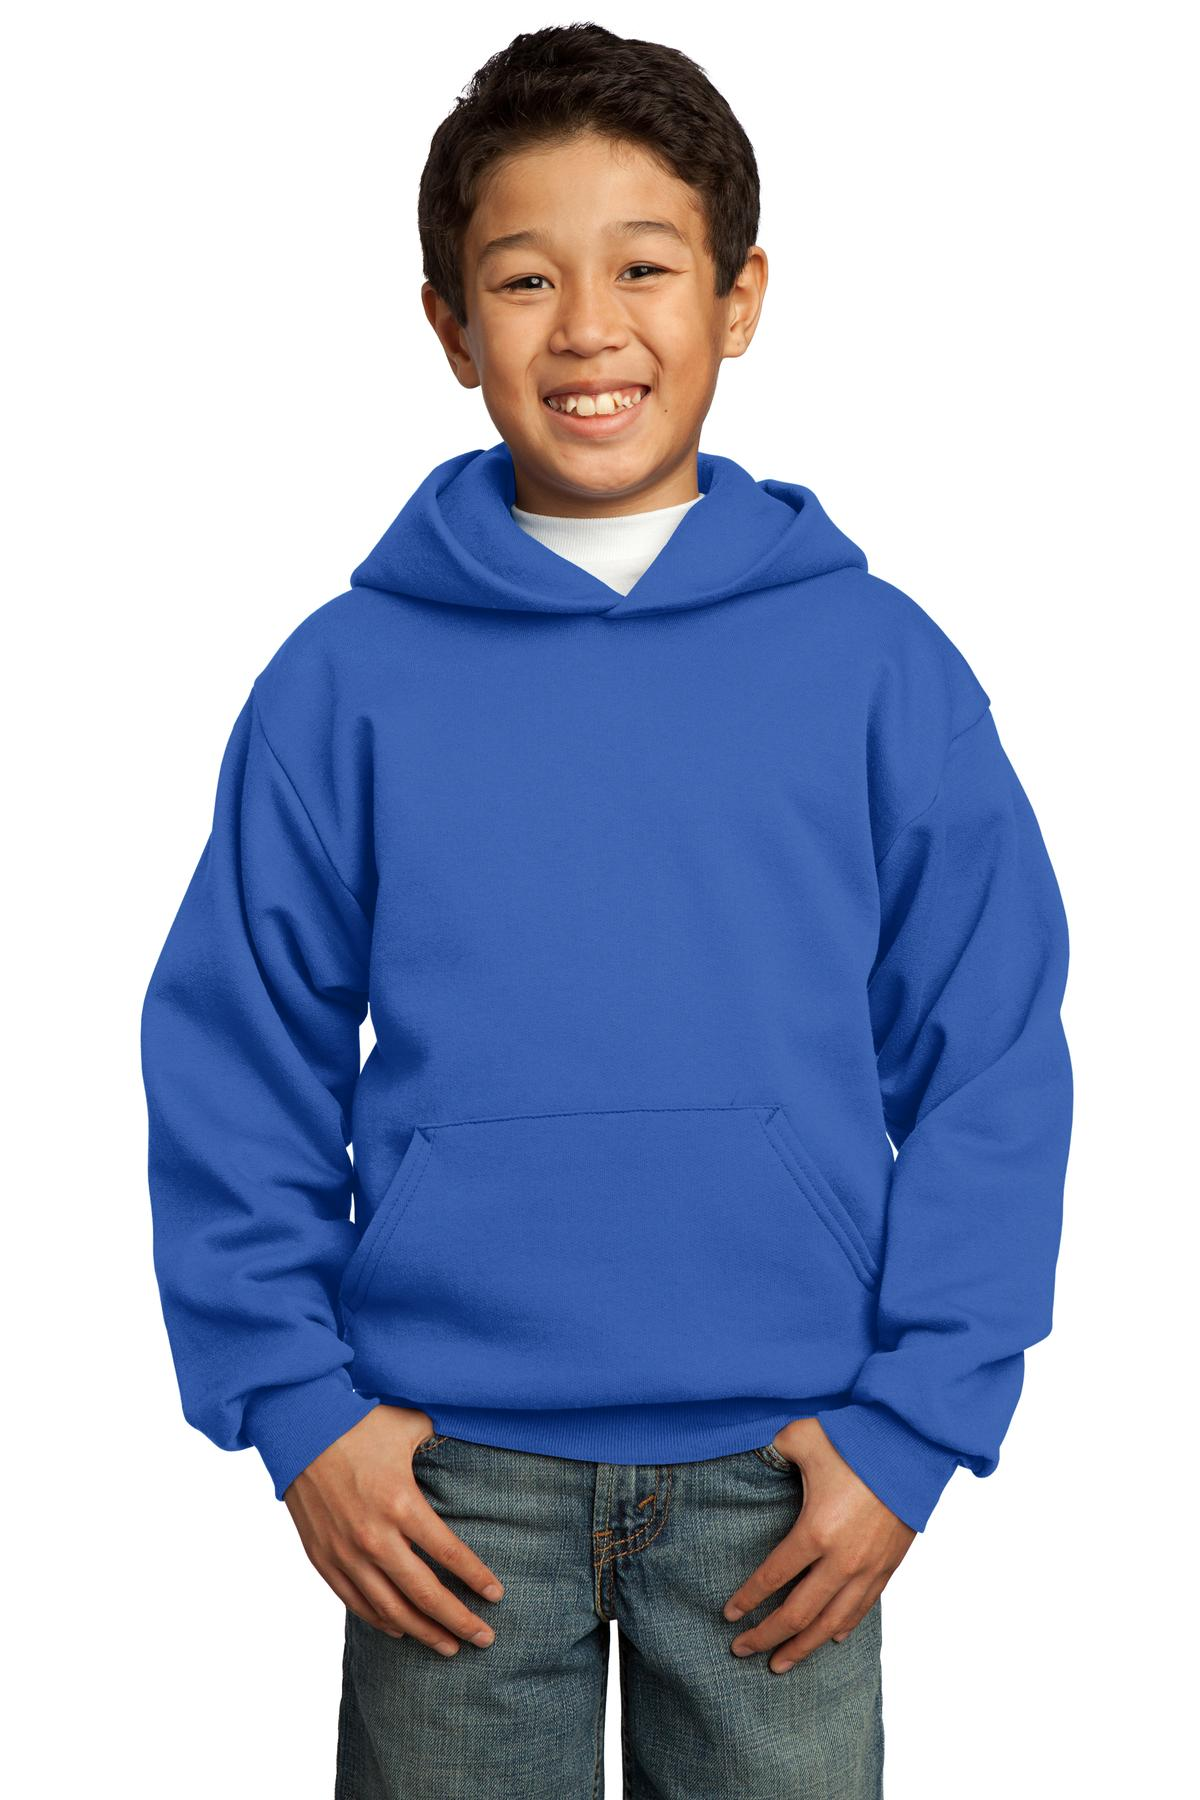 Royal Port & Company - Youth Core Fleece Pullover Hooded Sweatshirt.